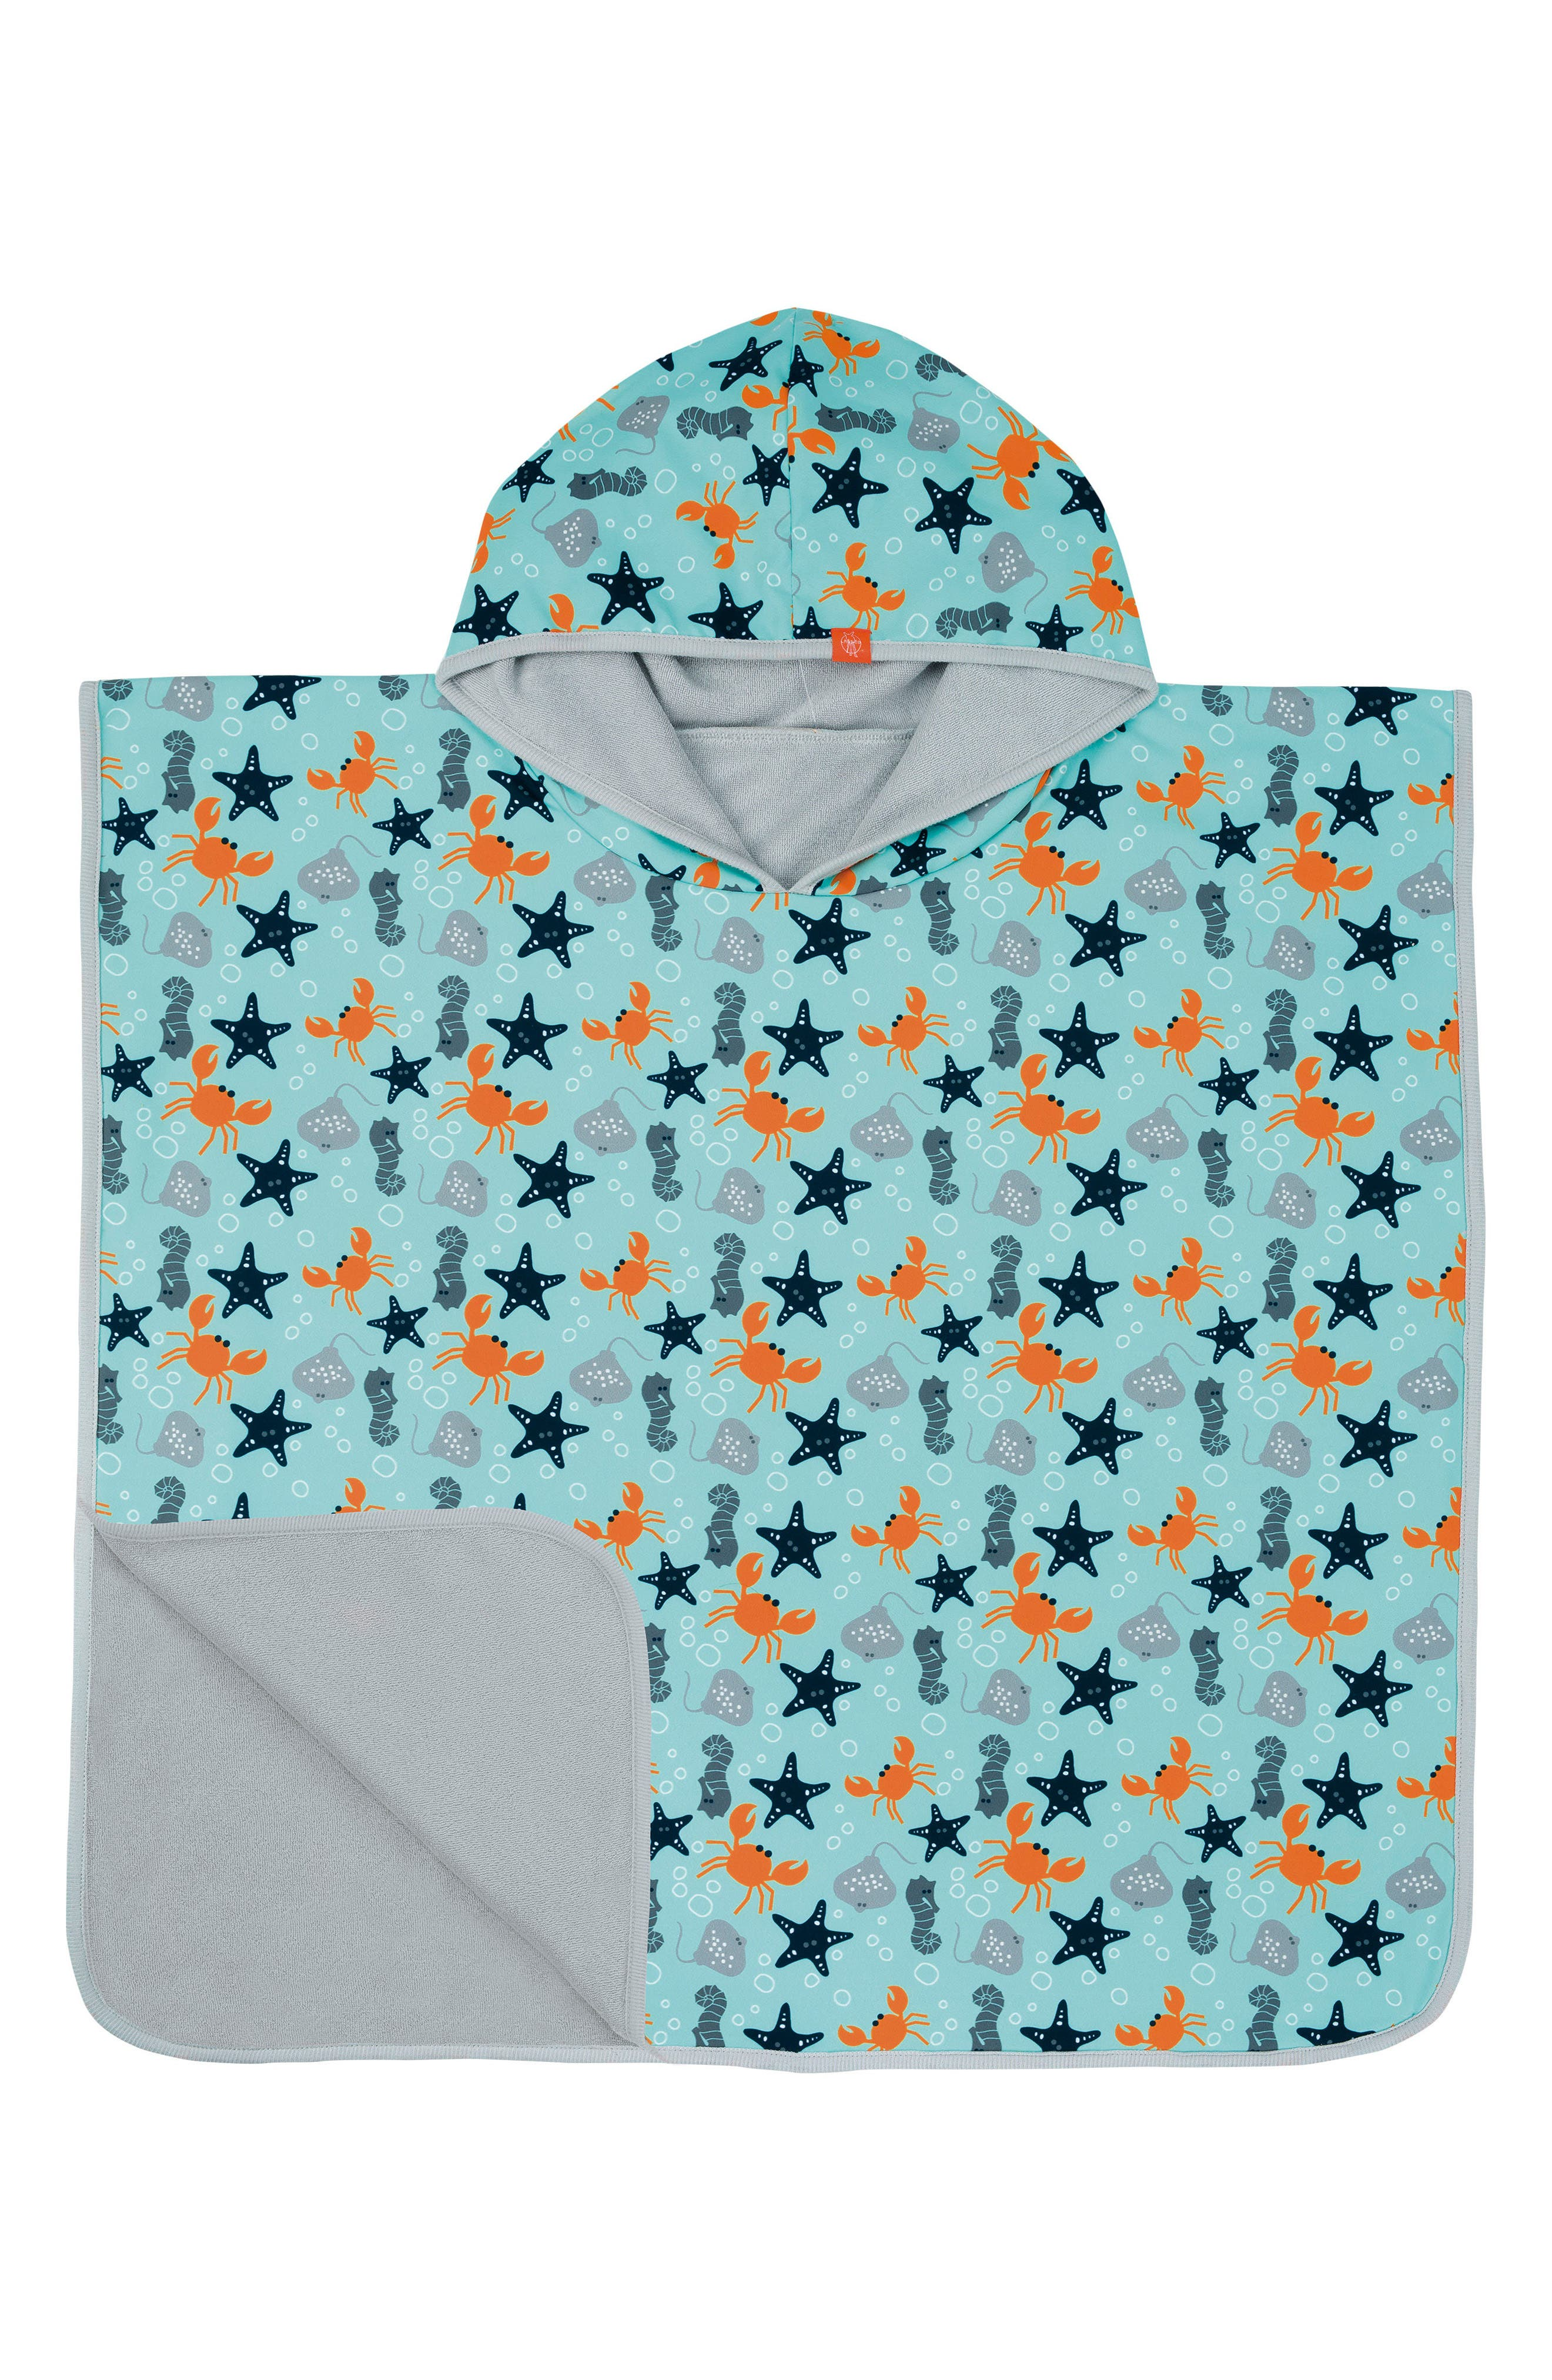 Starfish Hooded Beach Poncho,                         Main,                         color, Light Blue Orange Grey Navy